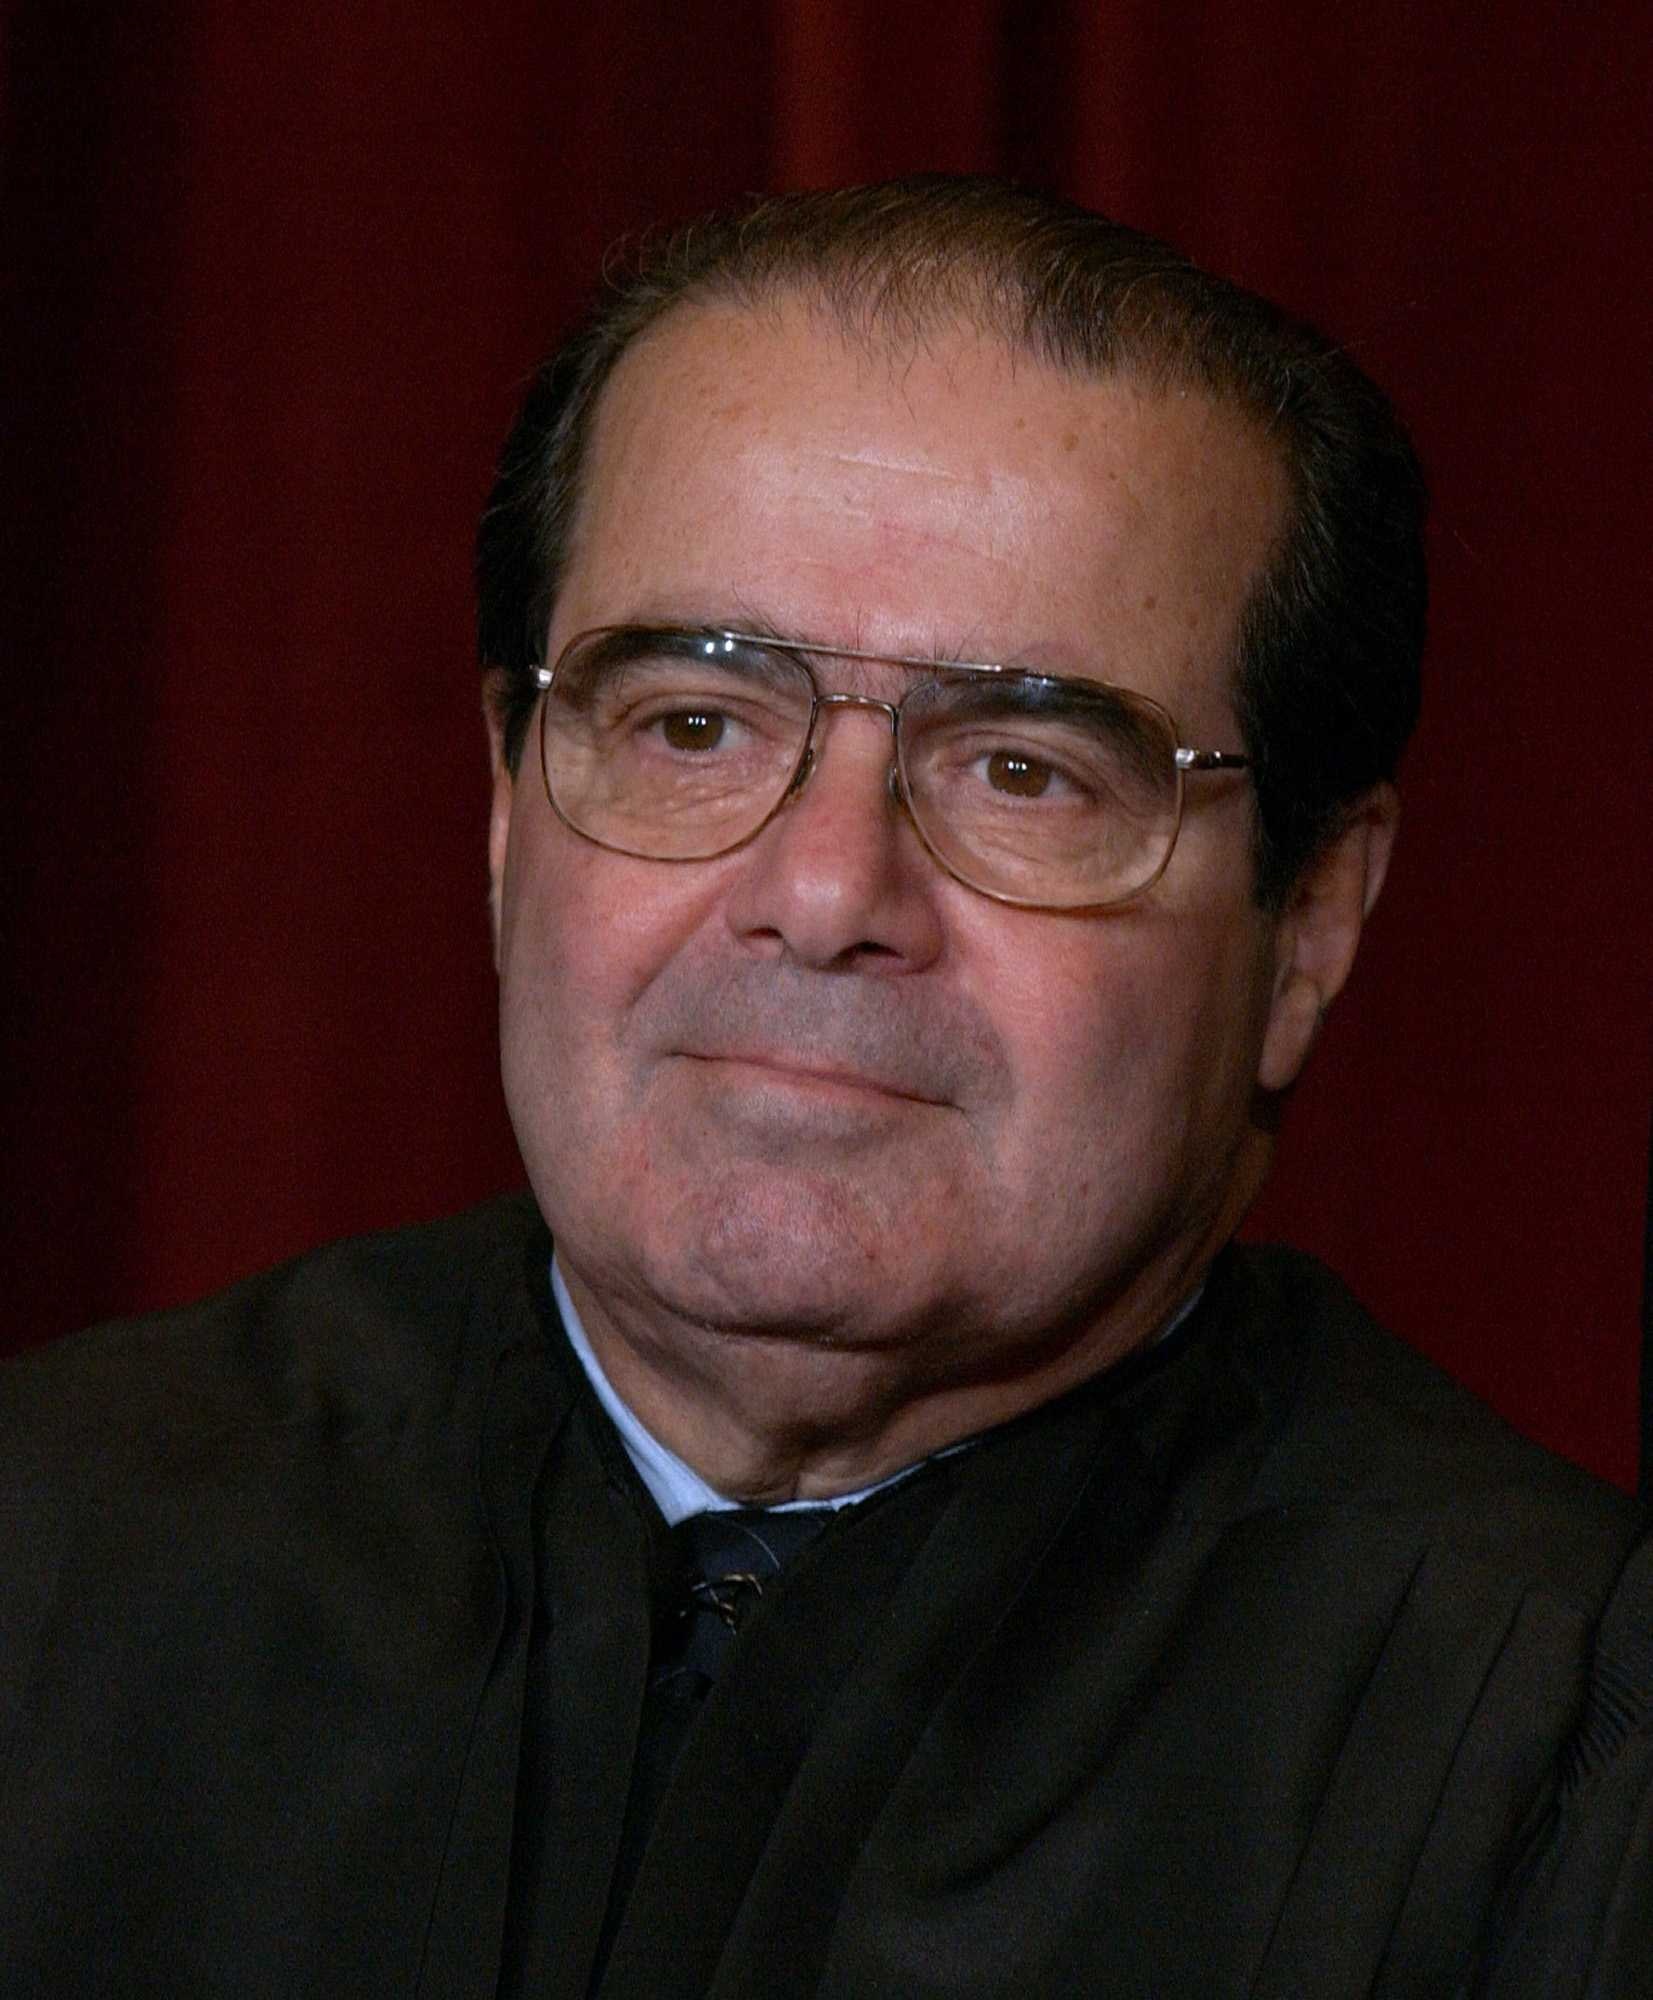 KRT US NEWS STAND ALONE PHOTO SLUGGED: SUPREMECOURT KRT PHOTOGRAPH BY PETE SOUZA/CHICAGO TRIBUNE (December 5) WASHINGTON, D.C.--  Supreme Court Justice Antonin Scalia, one of nine justices of the Supreme Court who posed for news photographers in a rare session Friday, December 5, 2003. (lde)  2003